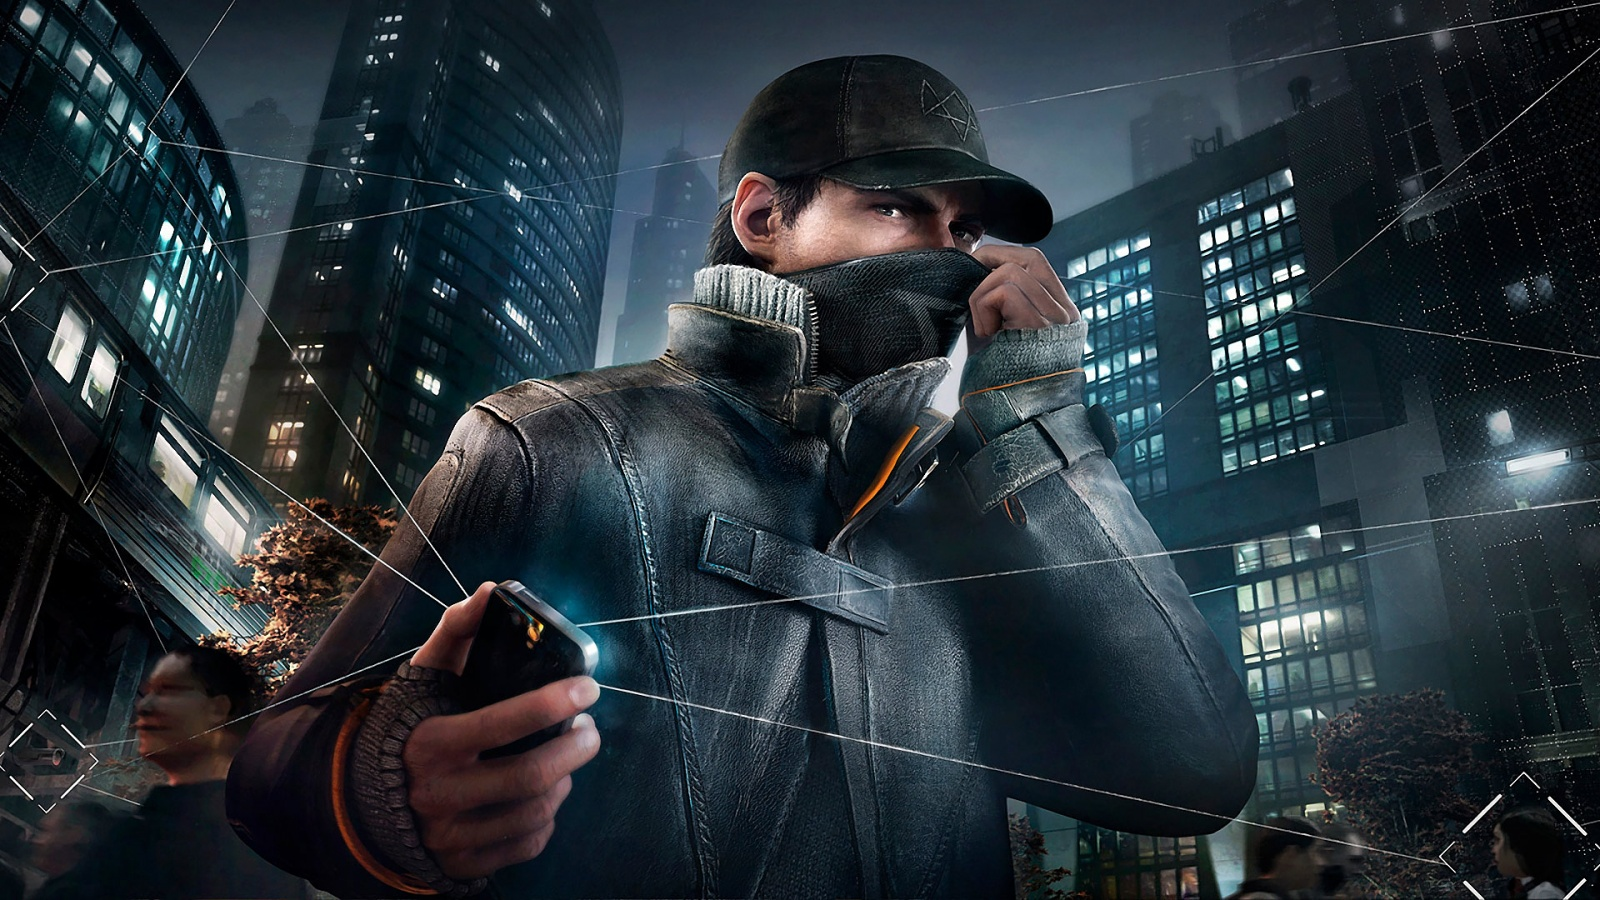 aiden pearce in watch dogs wallpapers - Aiden Pearce in Watch Dogs Wallpapers HD Wallpapers